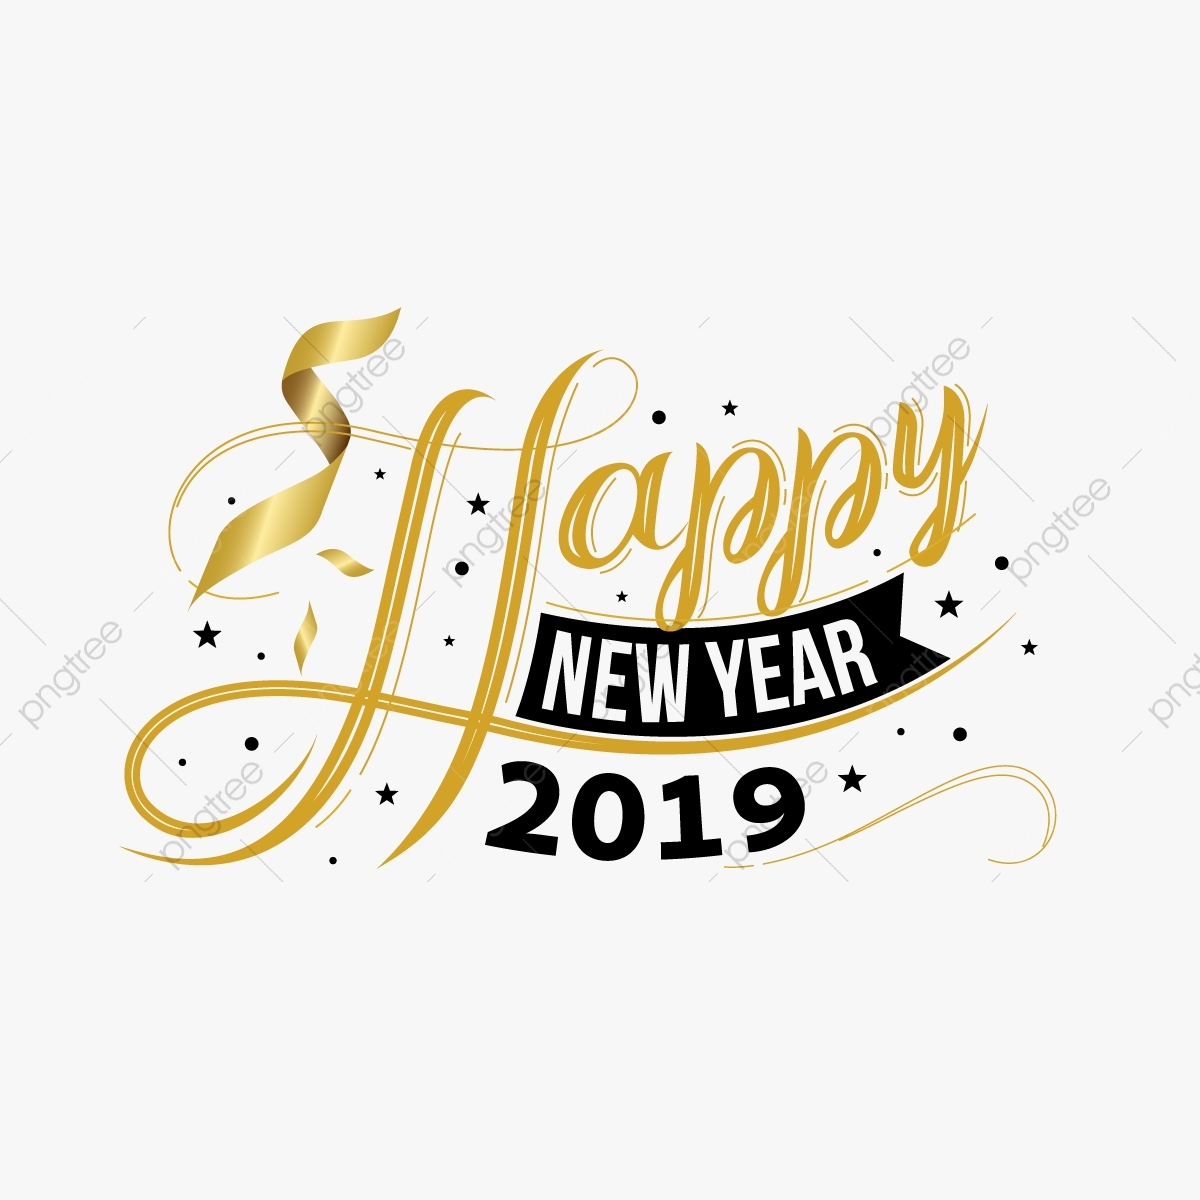 happy new year 2019 clipart transparent background